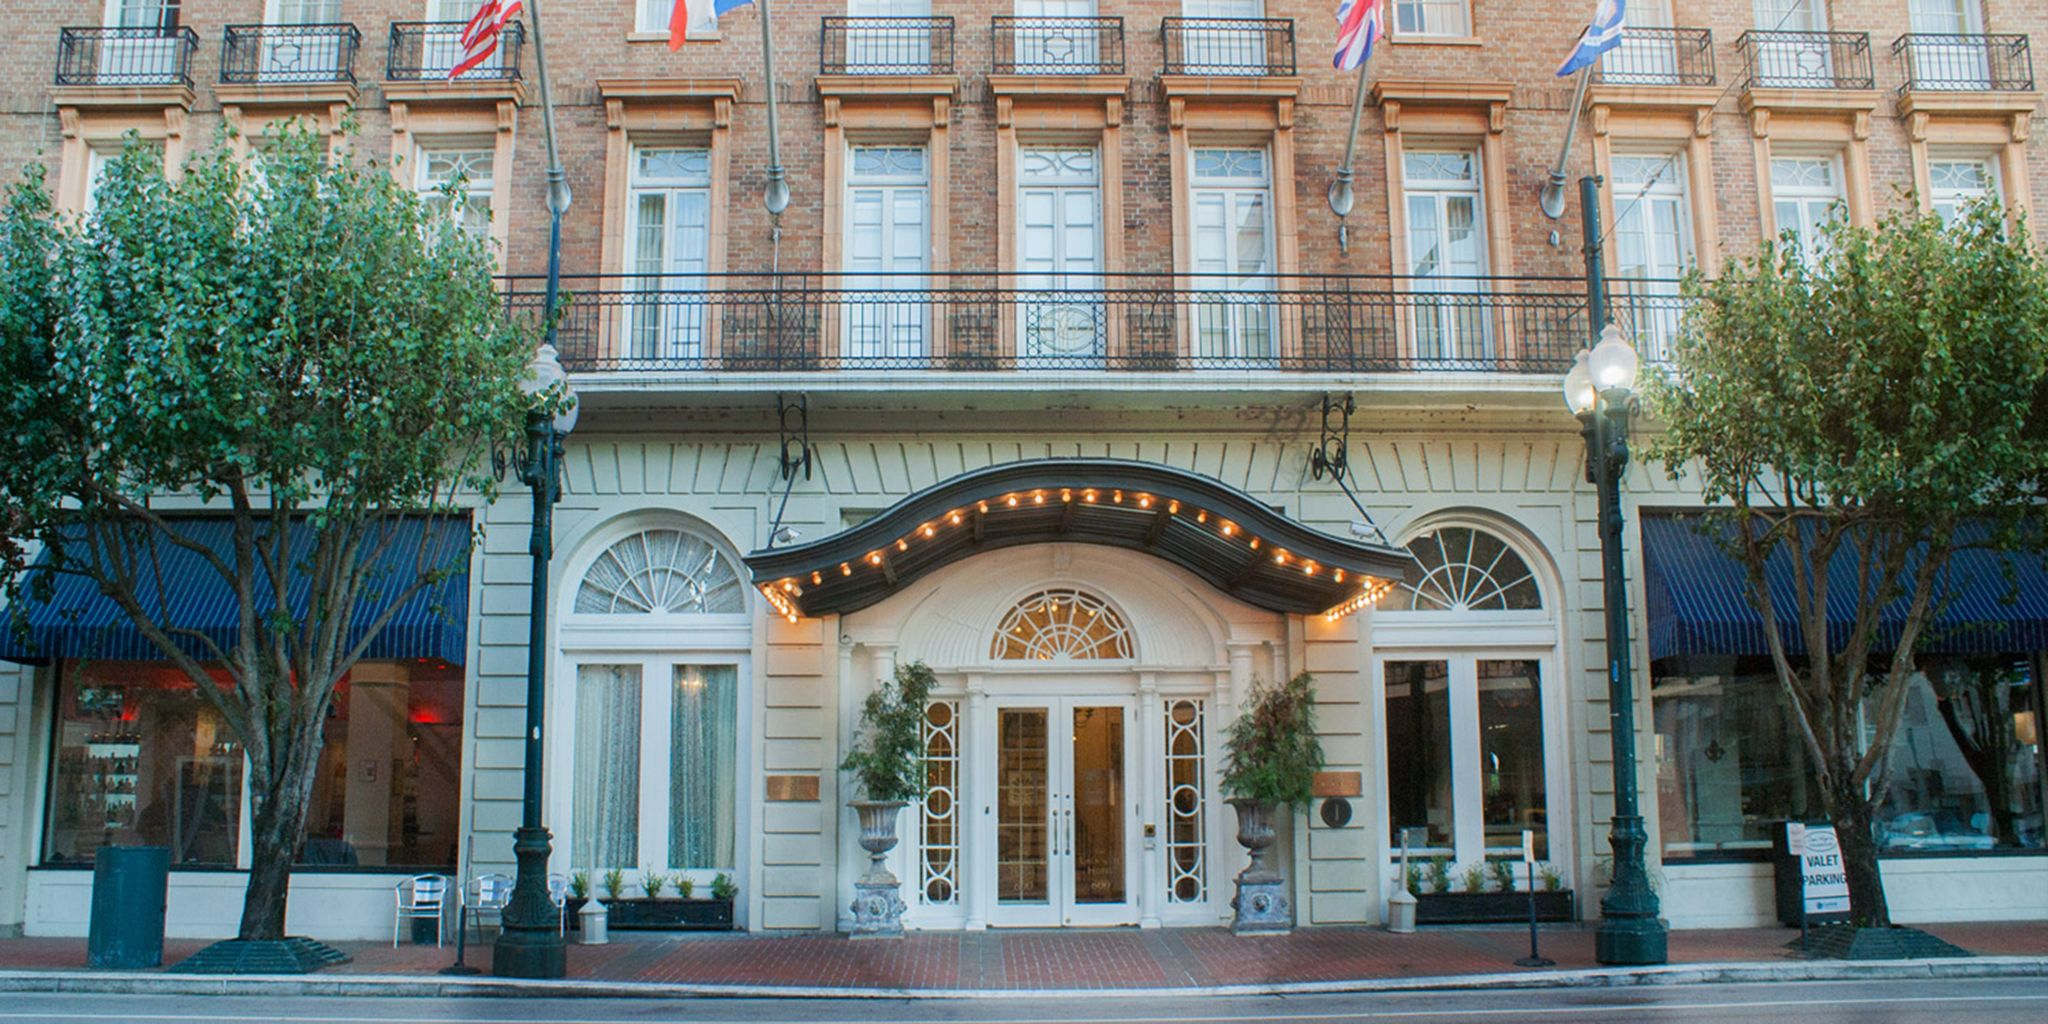 The lafayette hotel in new orleans louisiana for Boutique hotel orleans france